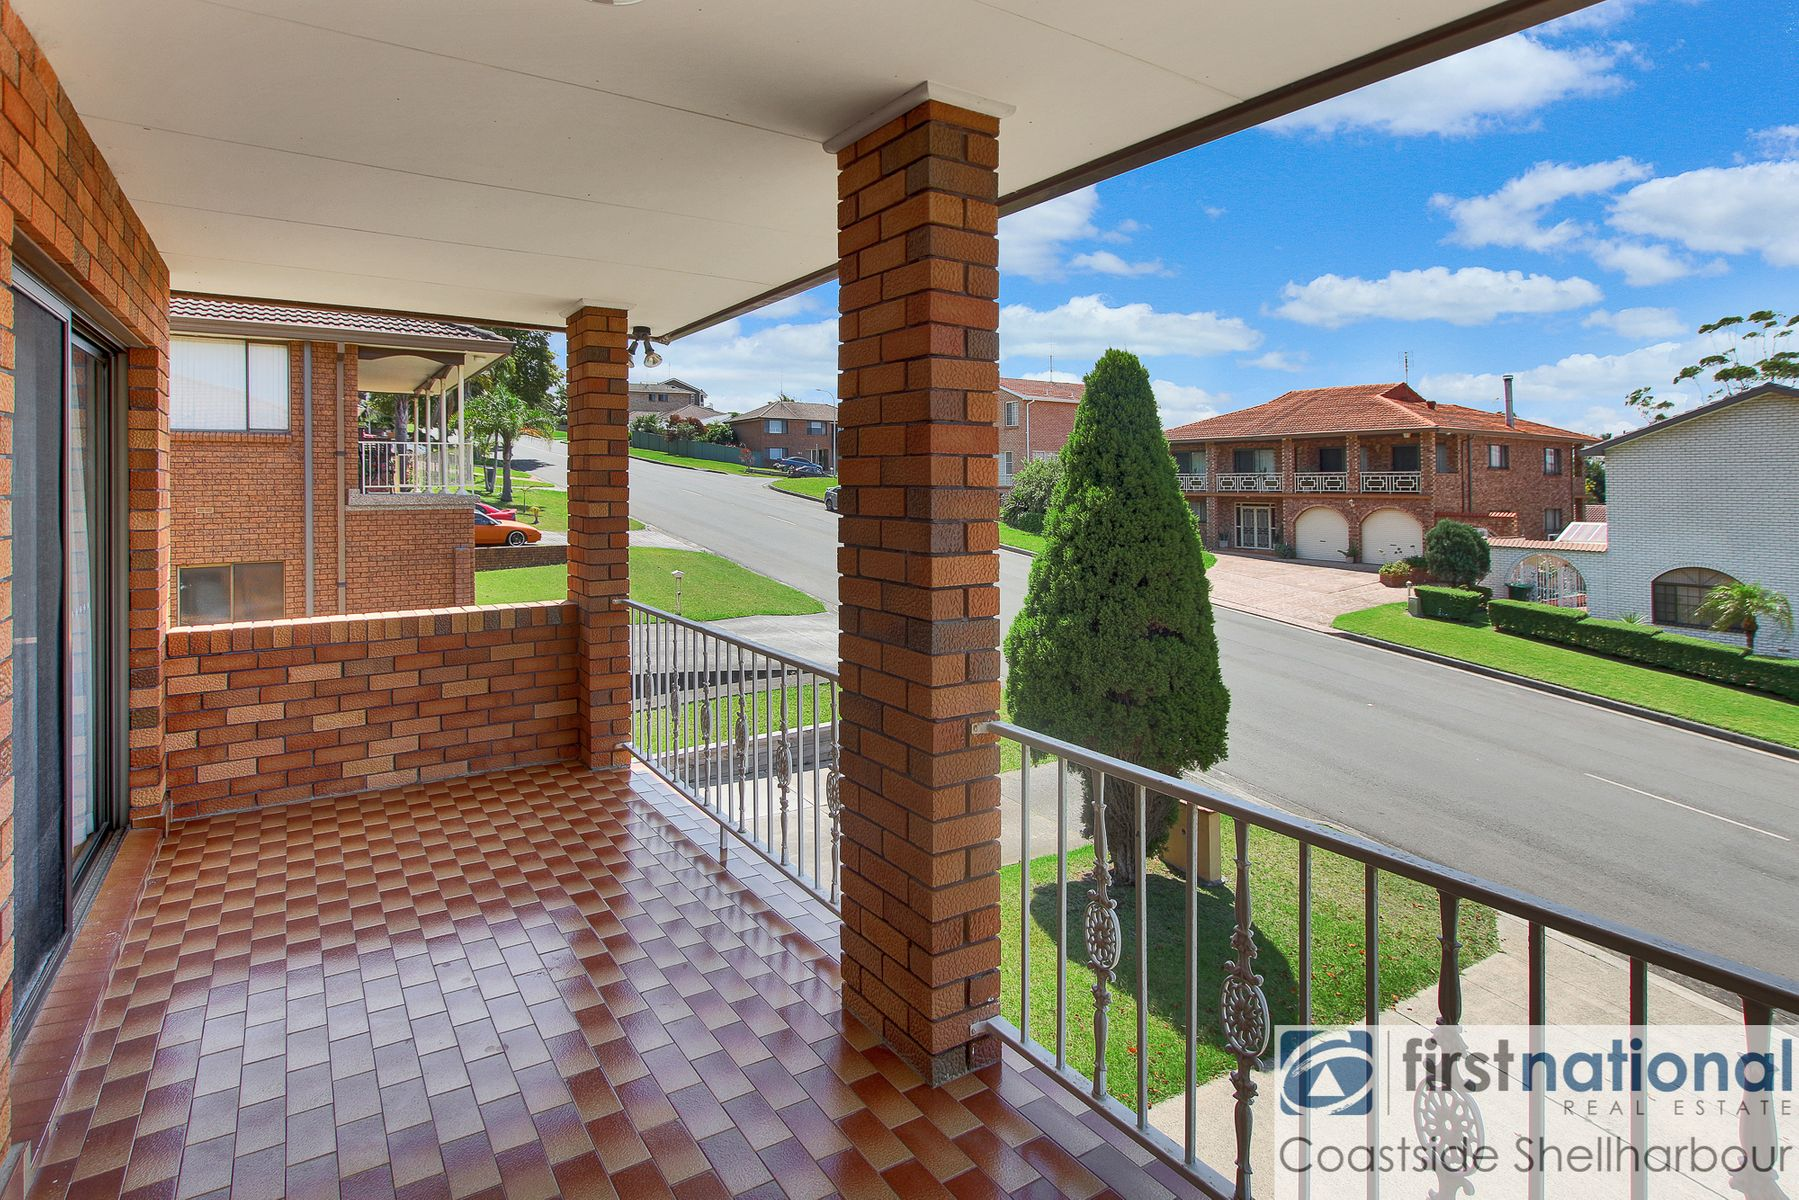 162 Captain Cook Drive, Barrack Heights, NSW 2528